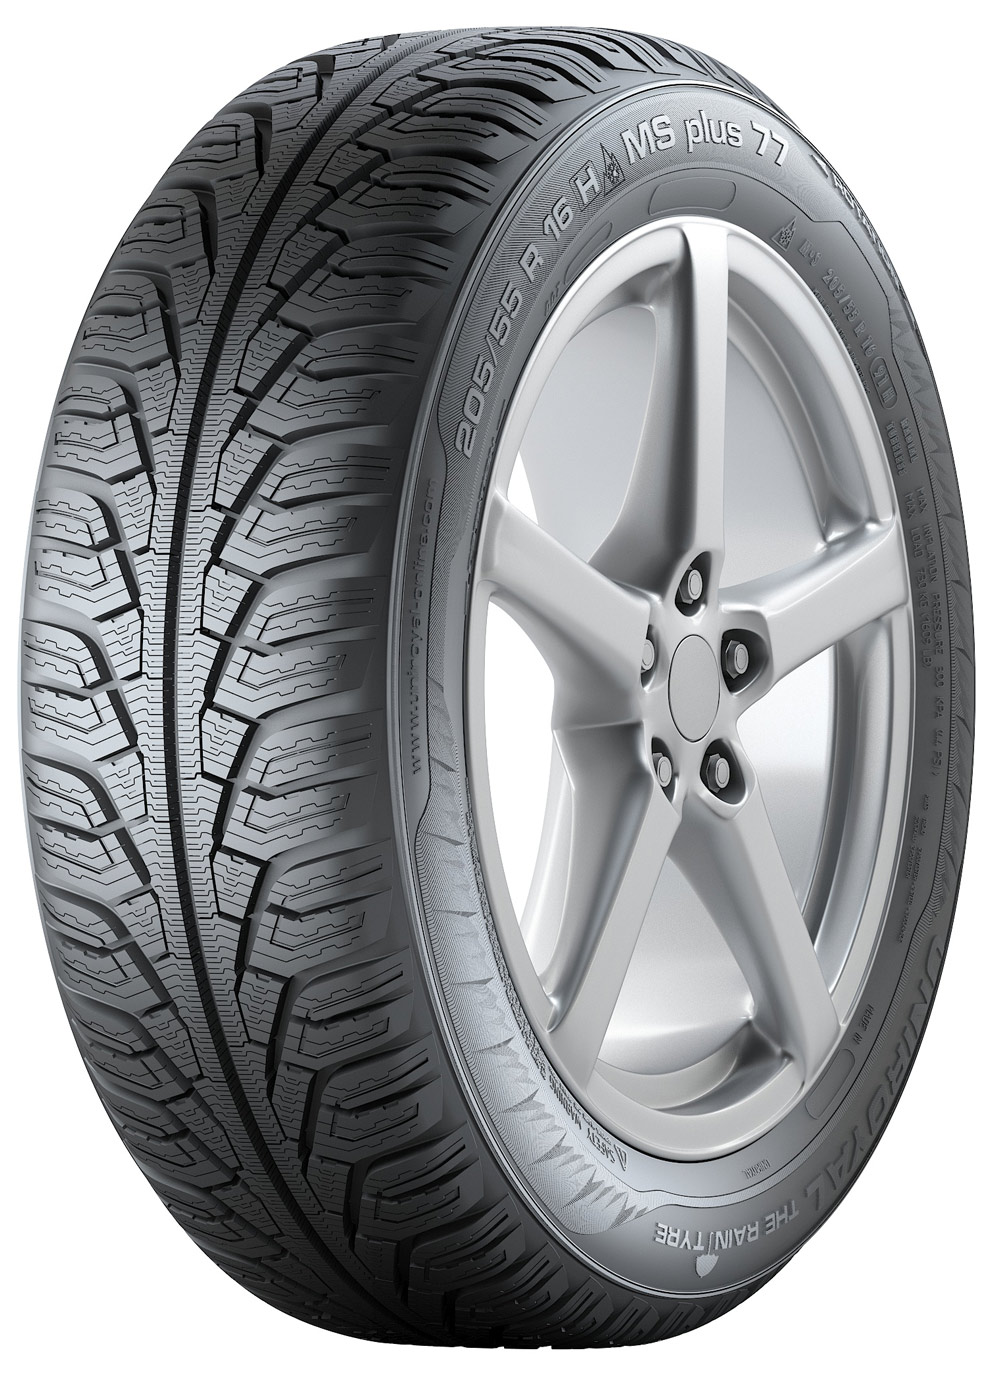 UNIROYAL MS PLUS 77 215/60 R 16